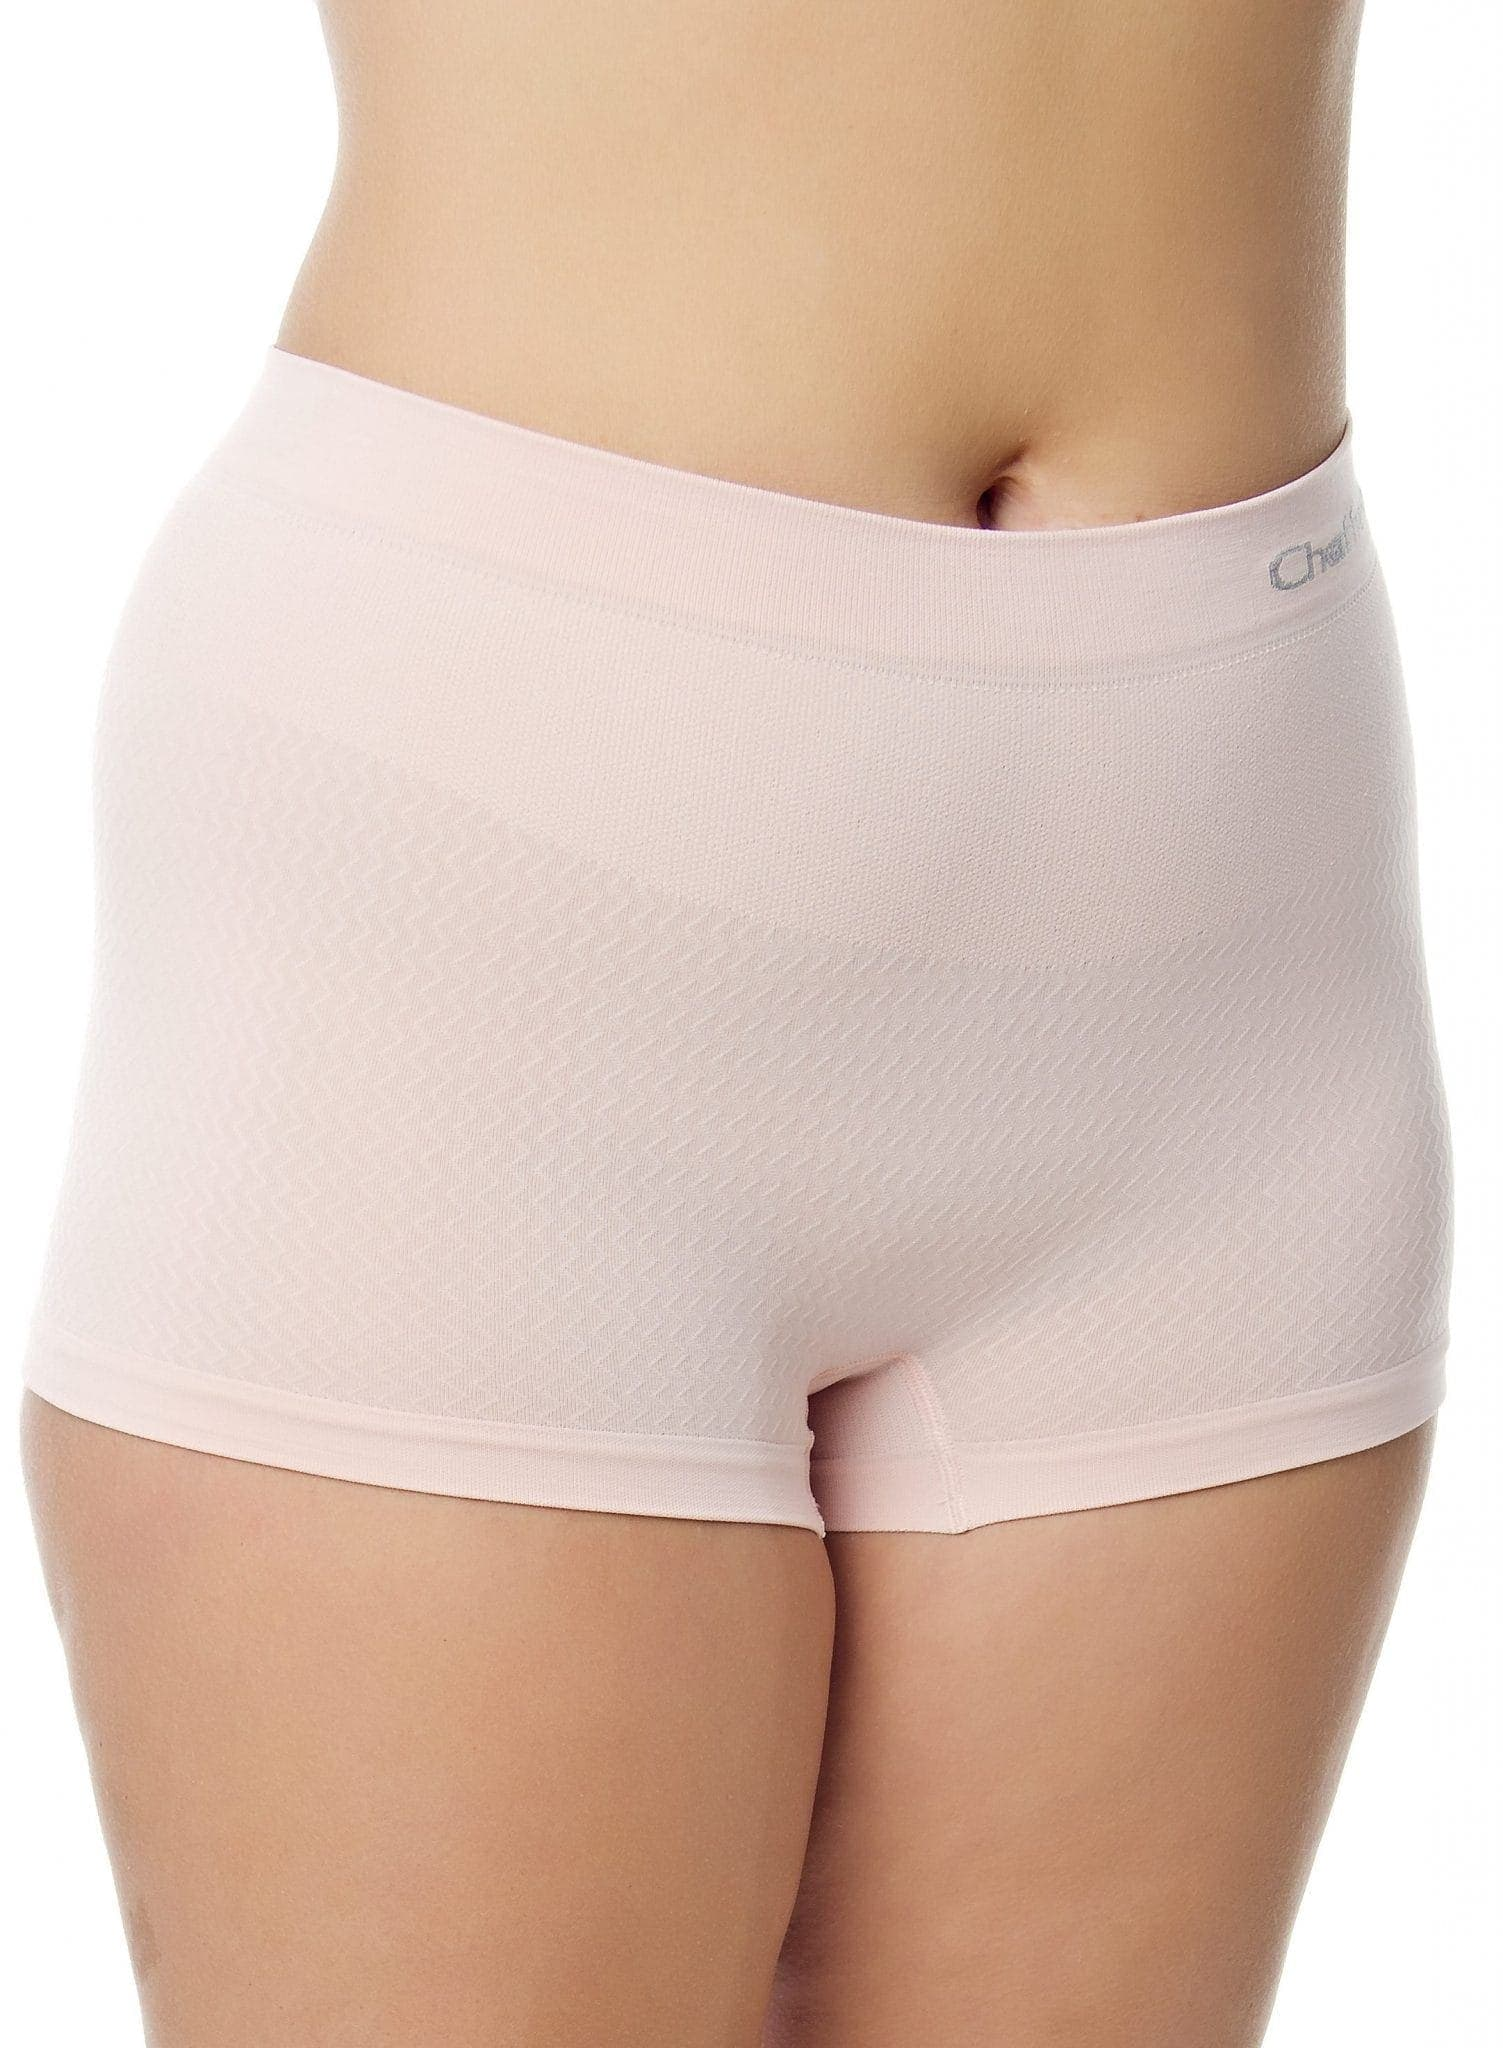 Women Boxer Briefs | Seamless, Stretchy & Lightweight Women's Briefs